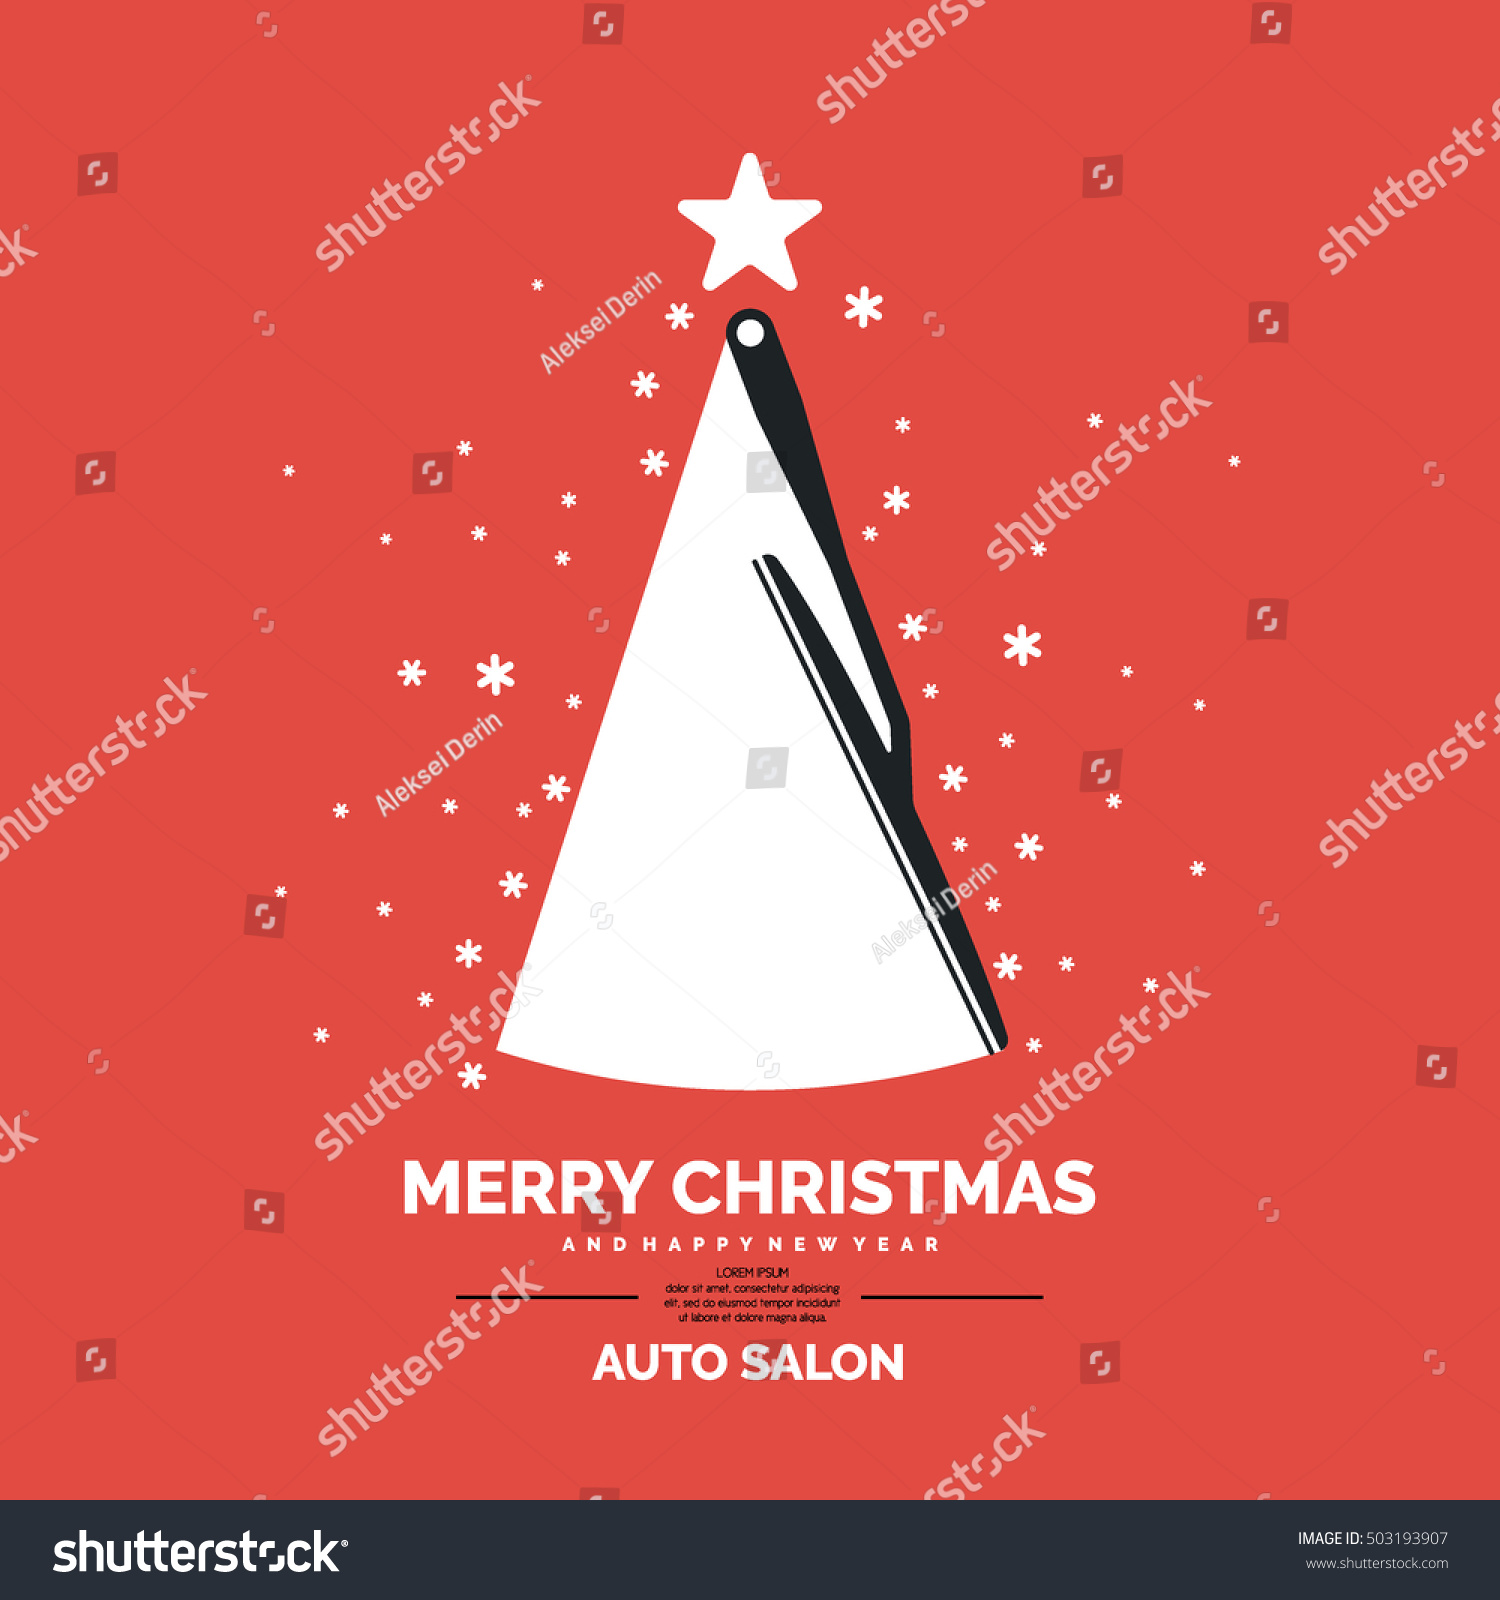 Poster Auto Salon Merry Christmas Happy Stock Vector Royalty Free